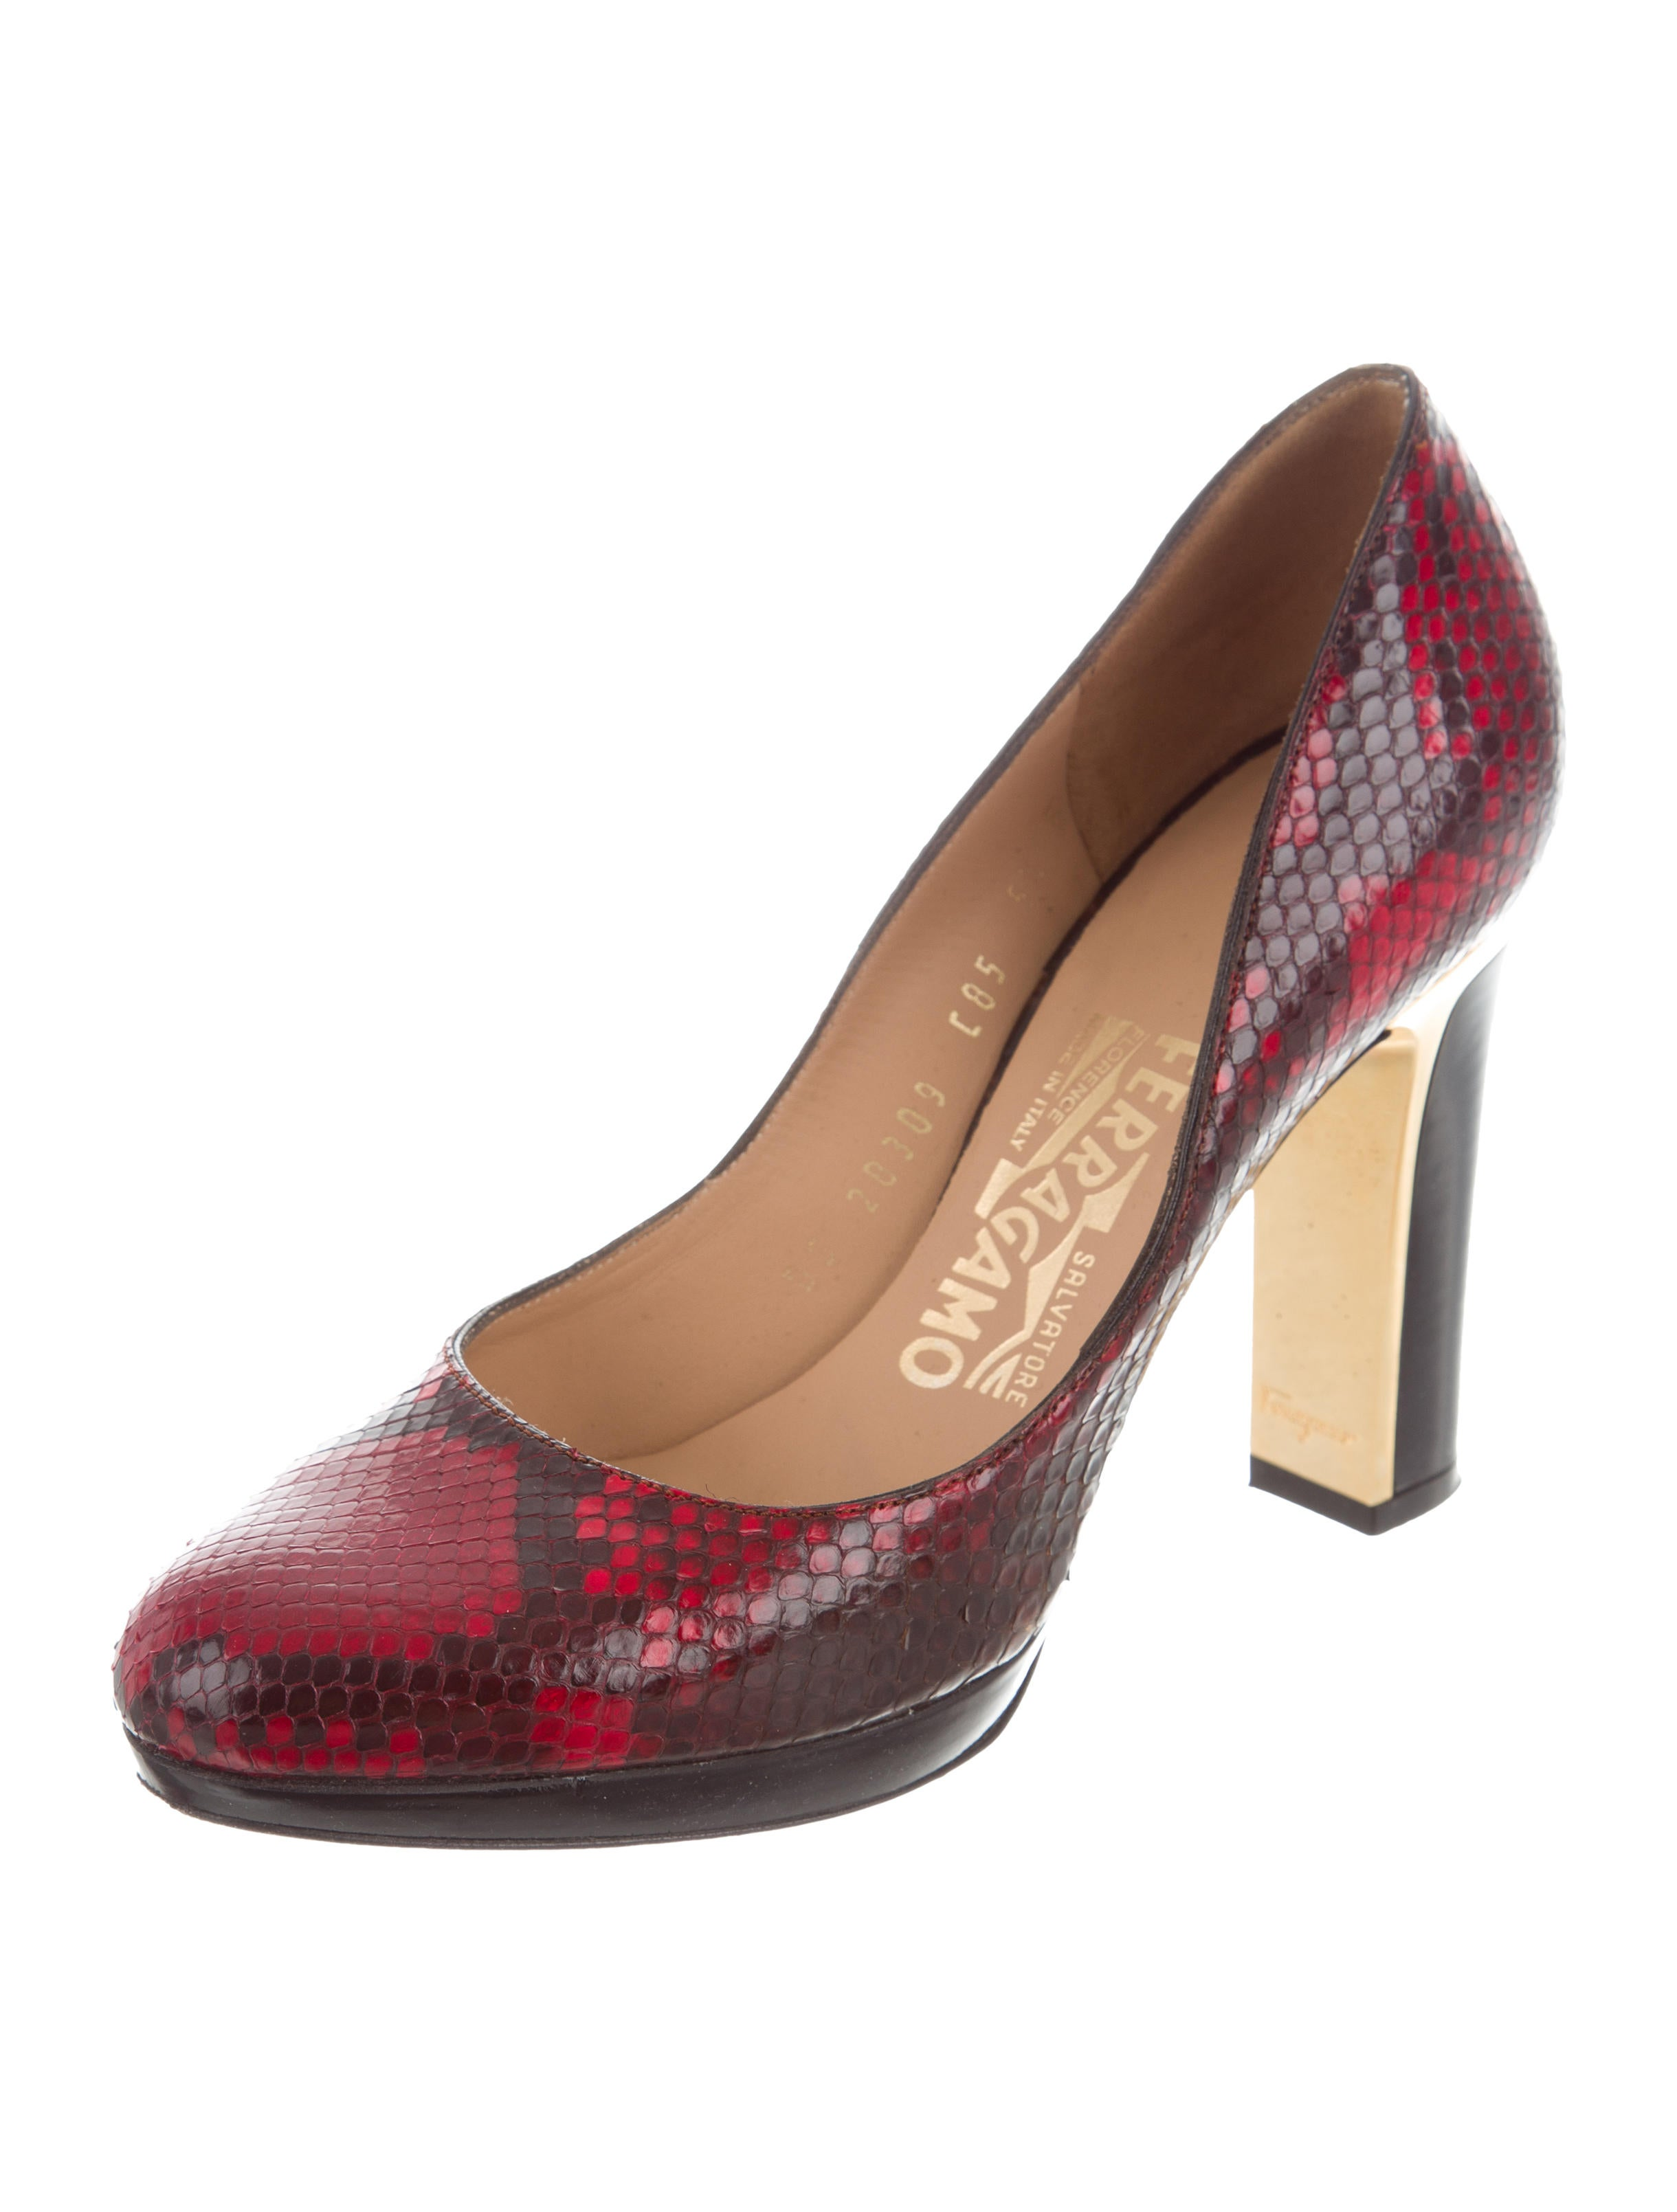 Salvatore Ferragamo Python-Trimmed Round-Toe Pumps free shipping brand new unisex clearance cheap outlet marketable sale original collections cheap online WL8LB0